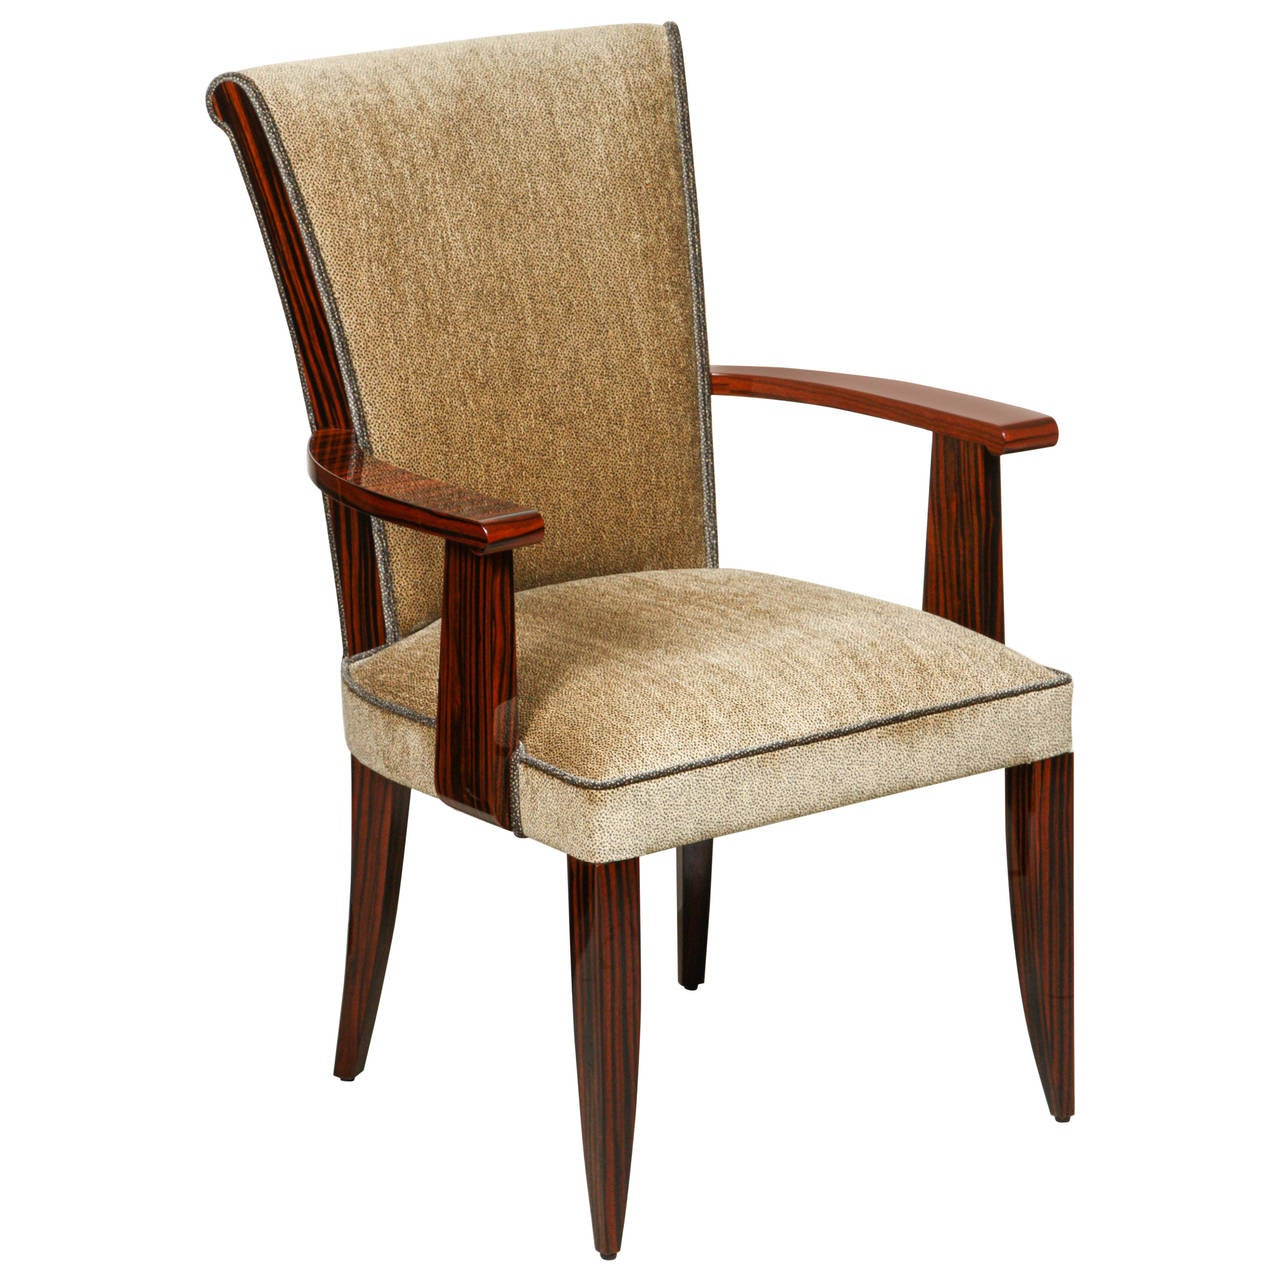 Art deco style high back dining chair with arms in for High back dining room chairs with arms